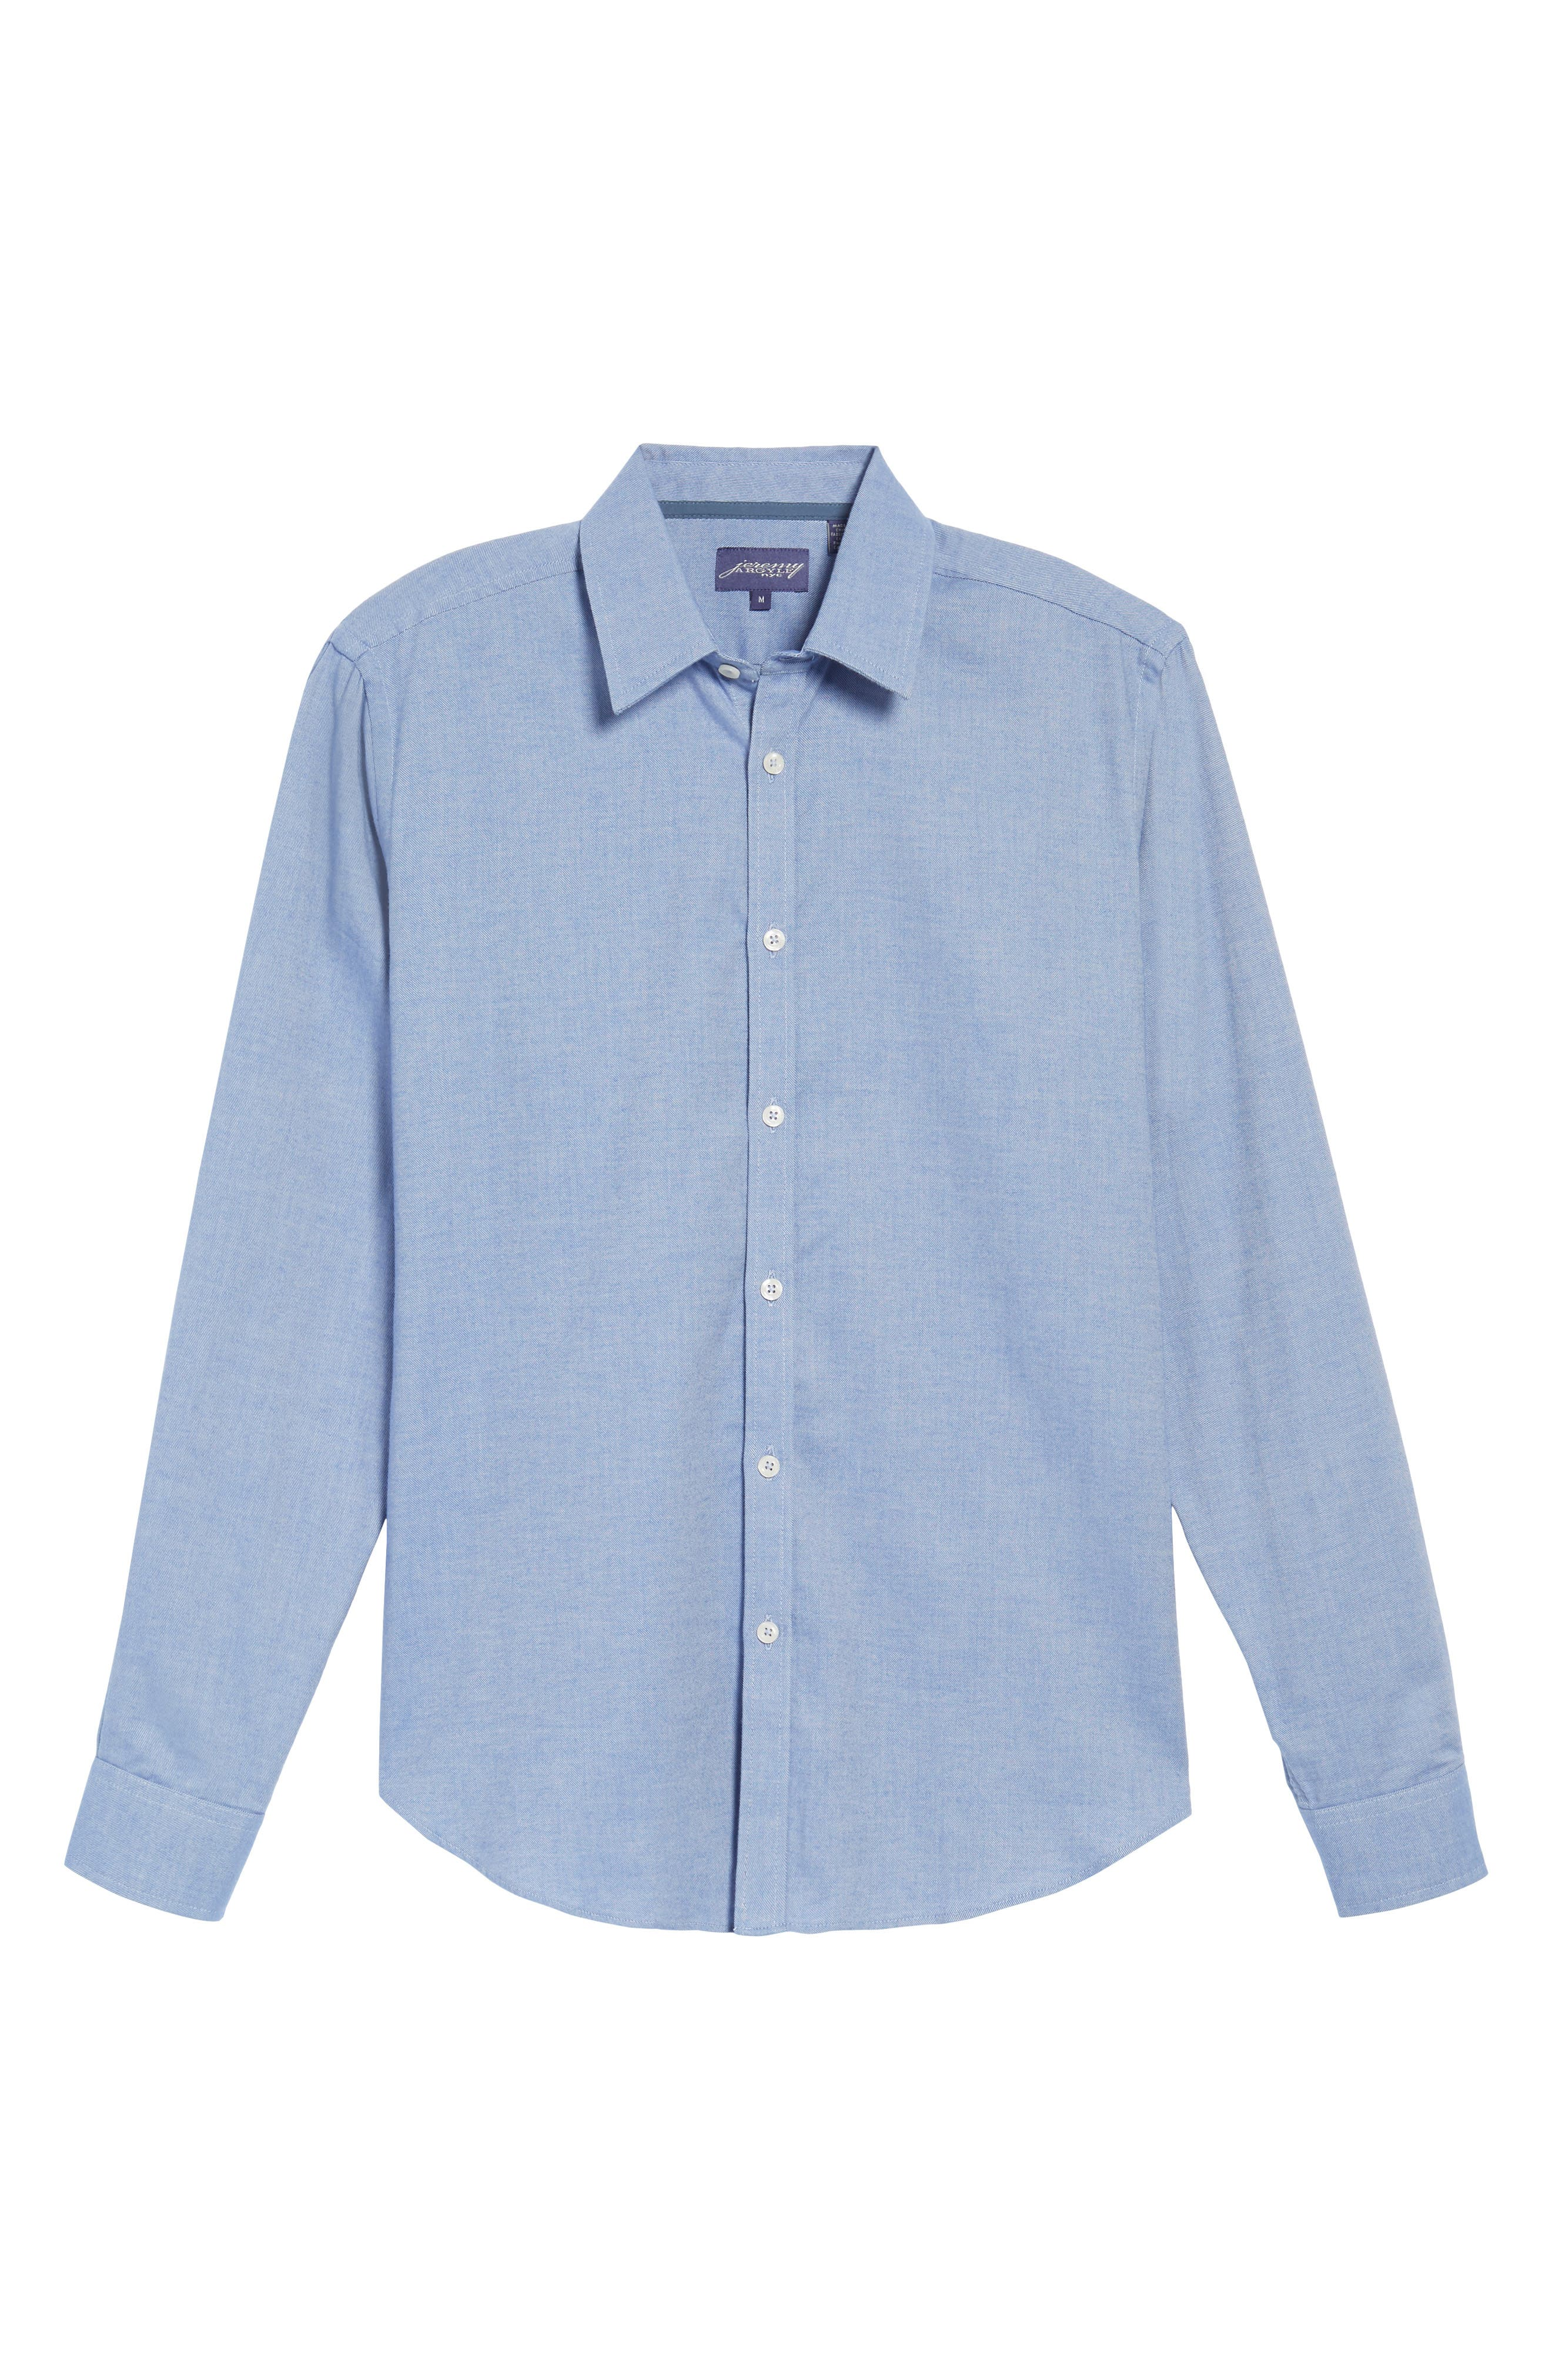 Slim Fit Oxford Cloth Sport Shirt,                             Alternate thumbnail 6, color,                             429